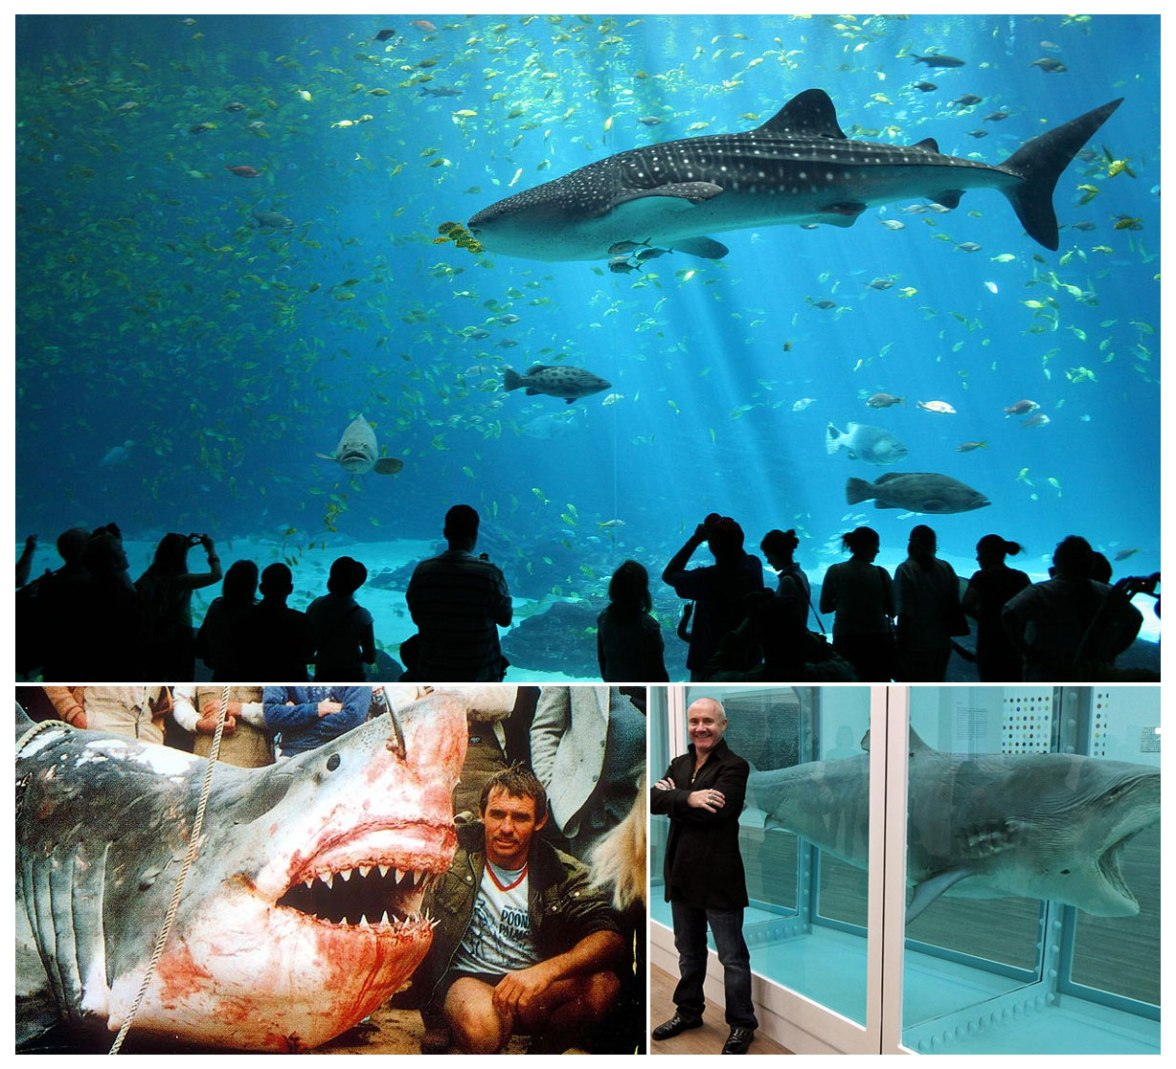 Sharks in aquariums versus live caught versus Damien Hirst shark in tank